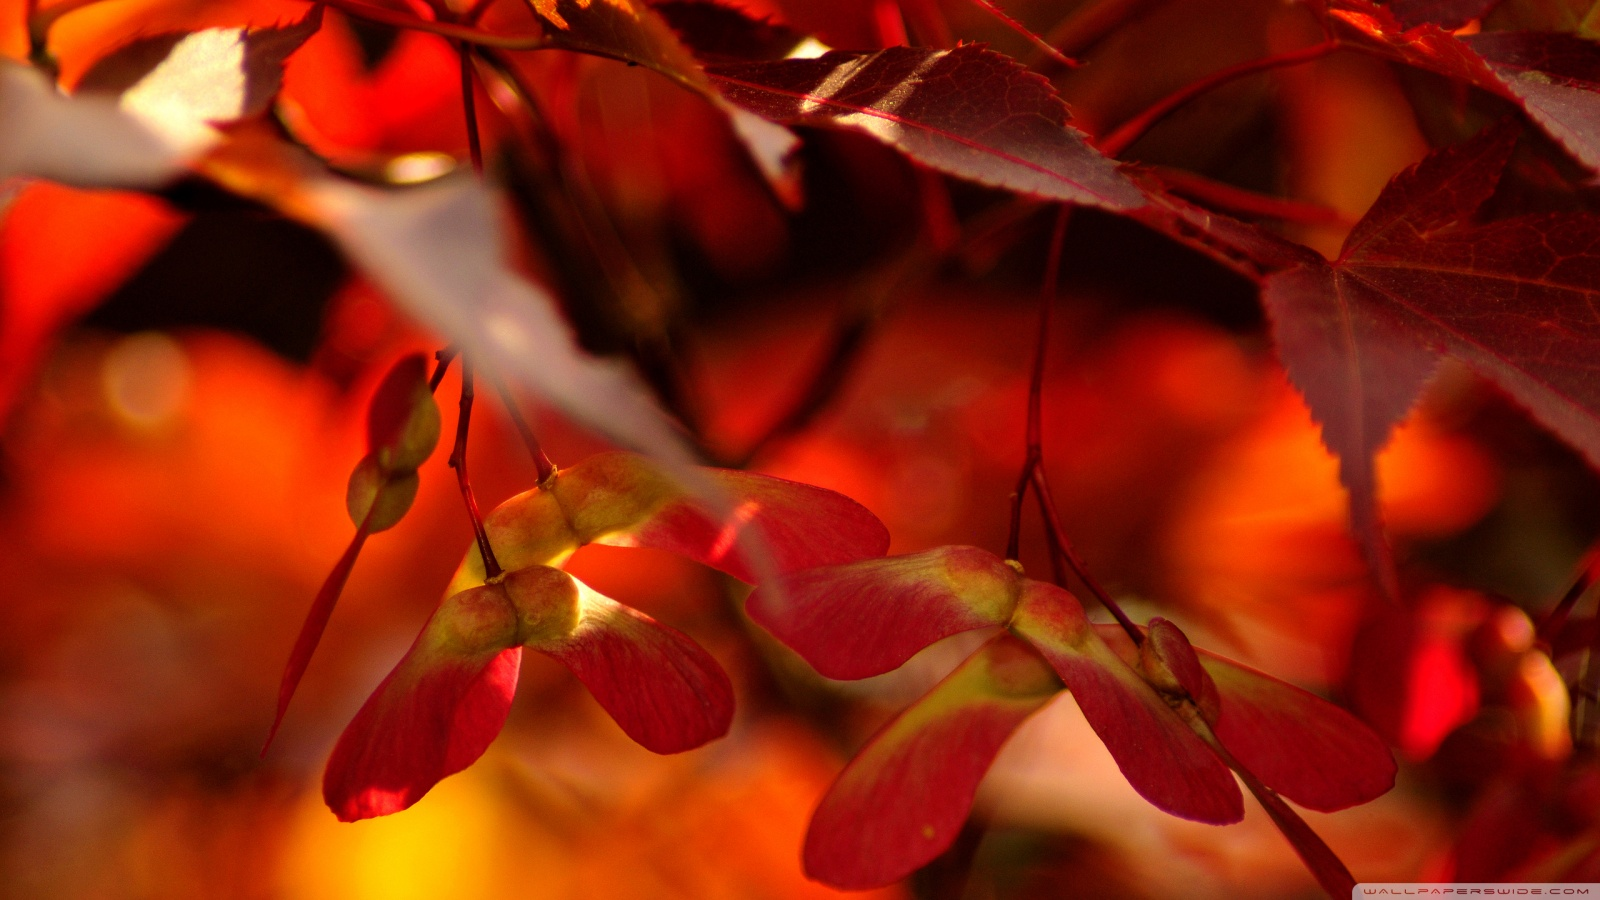 Fall 1080p Wallpaper Red Autumn Leaves Close Up 4k Hd Desktop Wallpaper For 4k